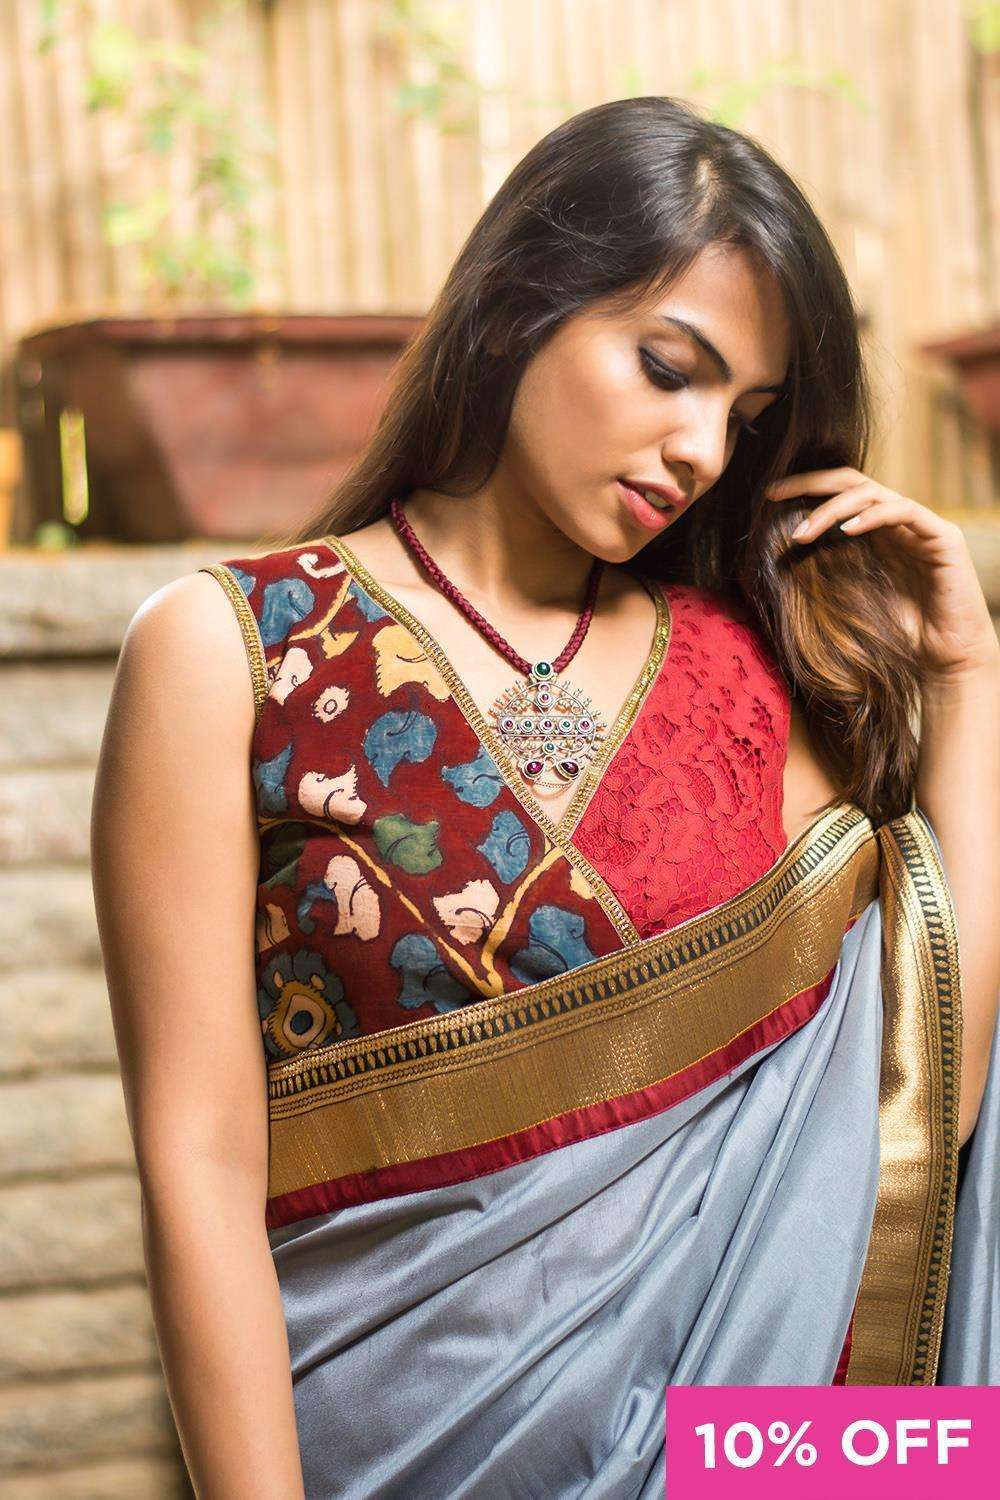 Kalamkari and lace crossover blouse; Size: 34